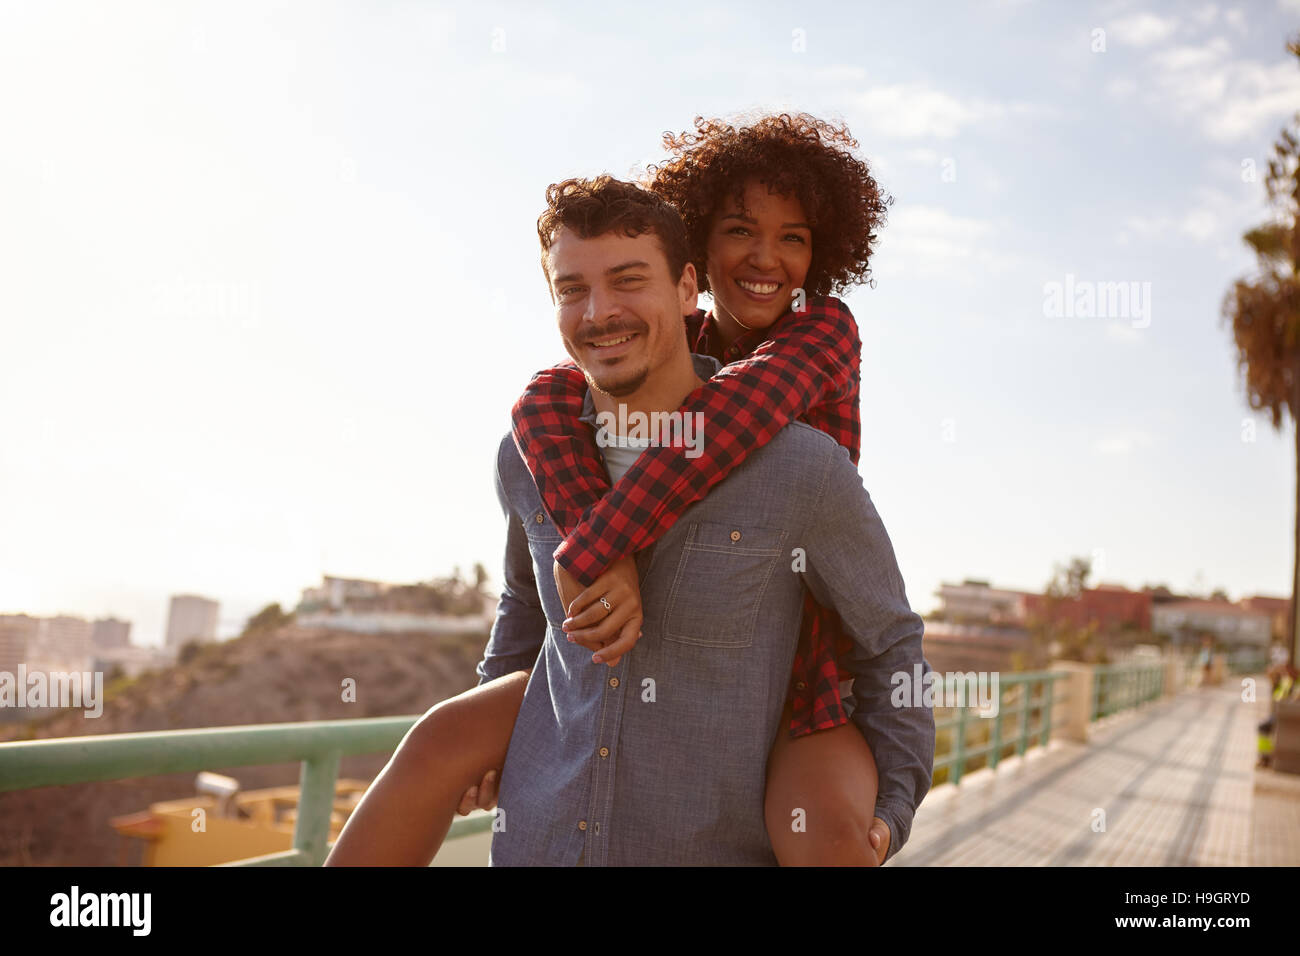 Joyful young girl getting a piggy back as she smiles a toothy smile with her arms around his neck while looking - Stock Image